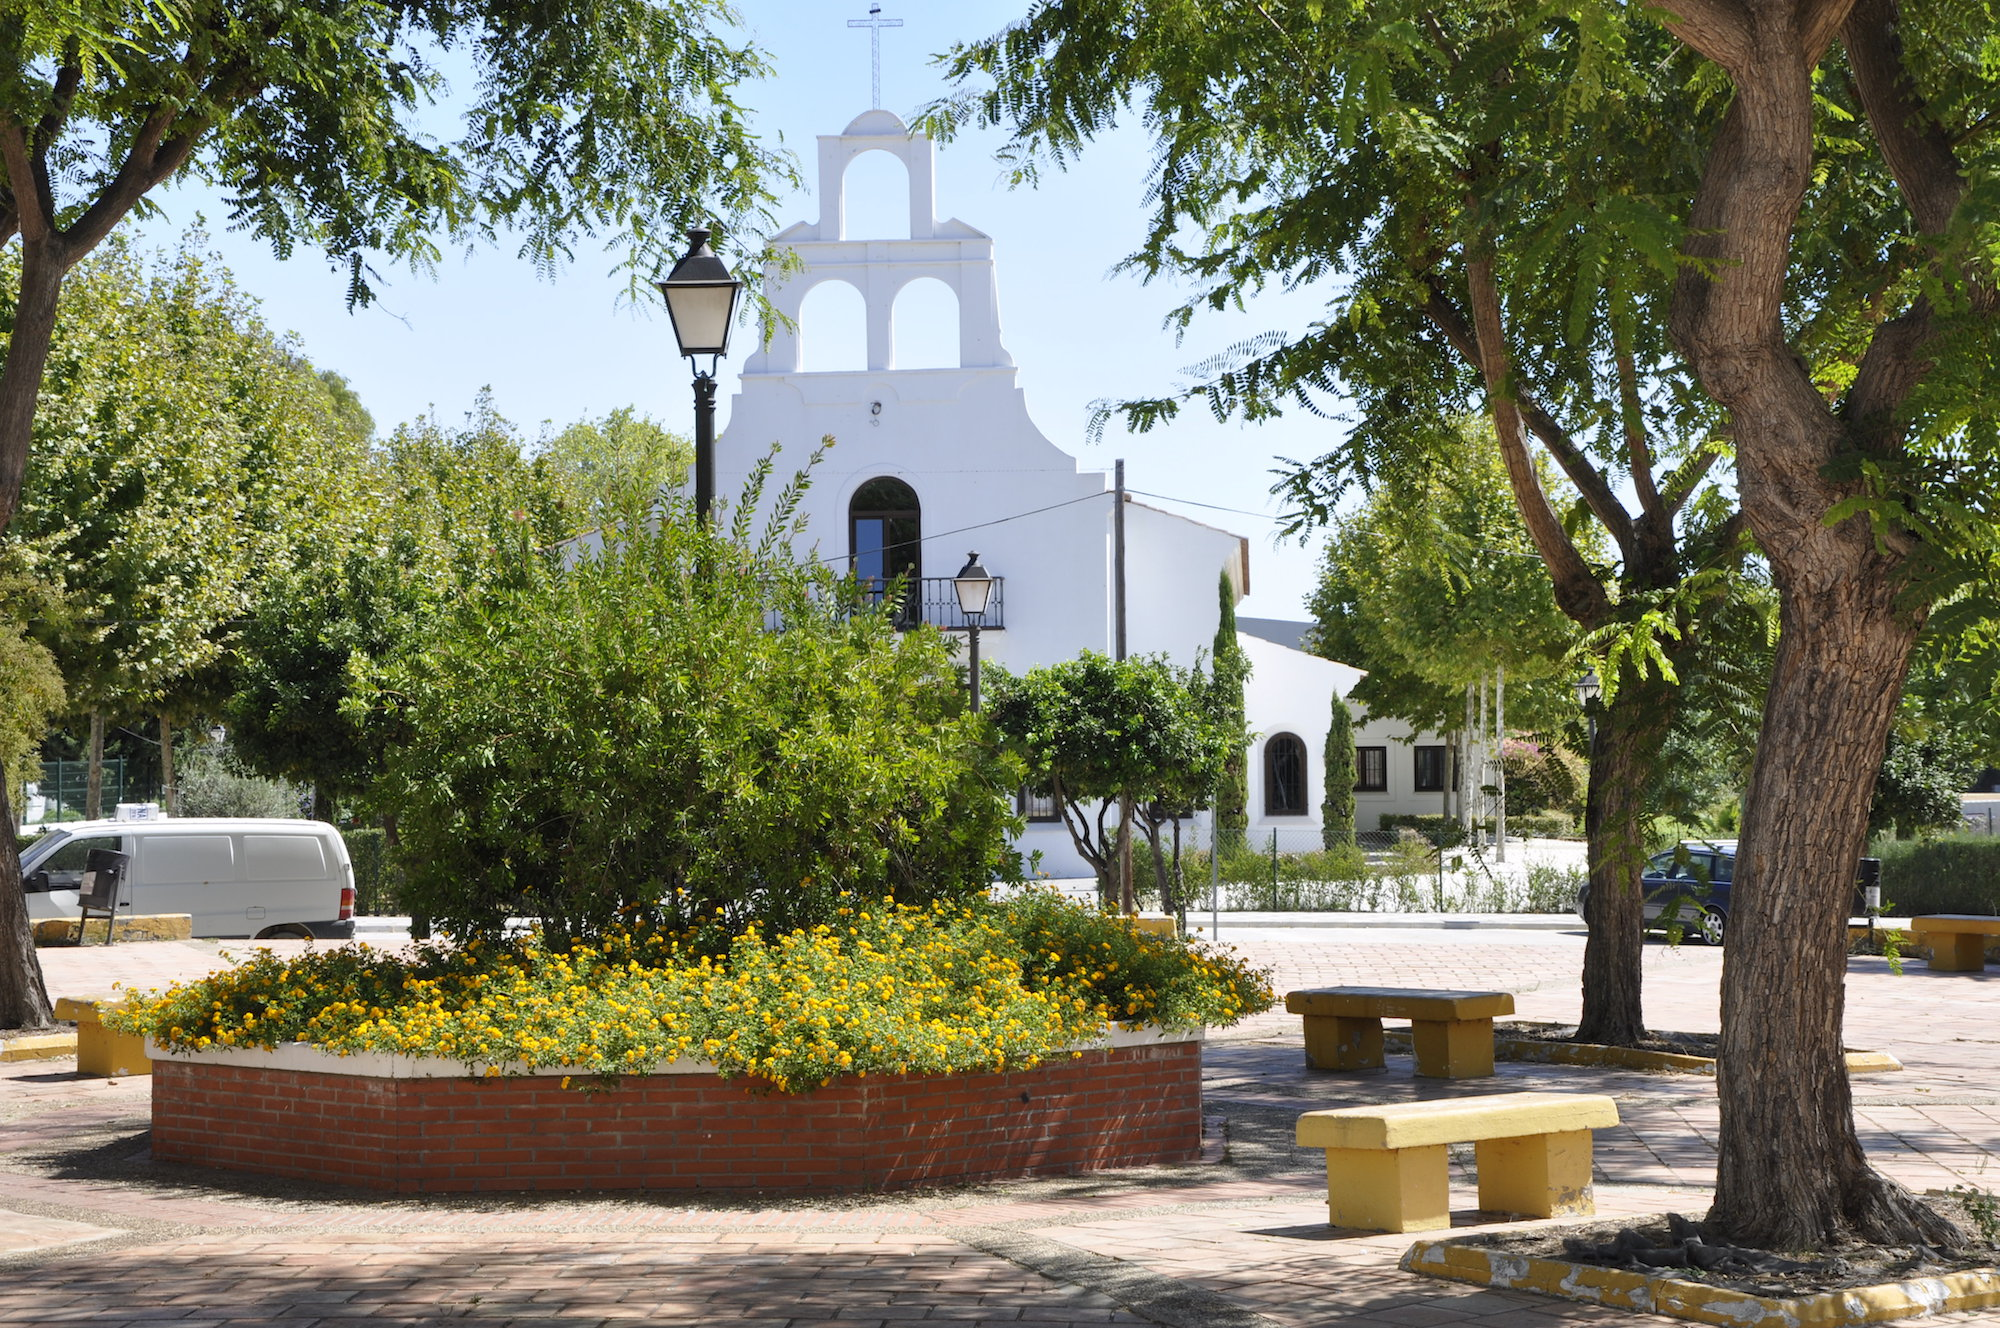 Pueblo Nuevo/Guadiaro is part of the Sotogrande dining scene